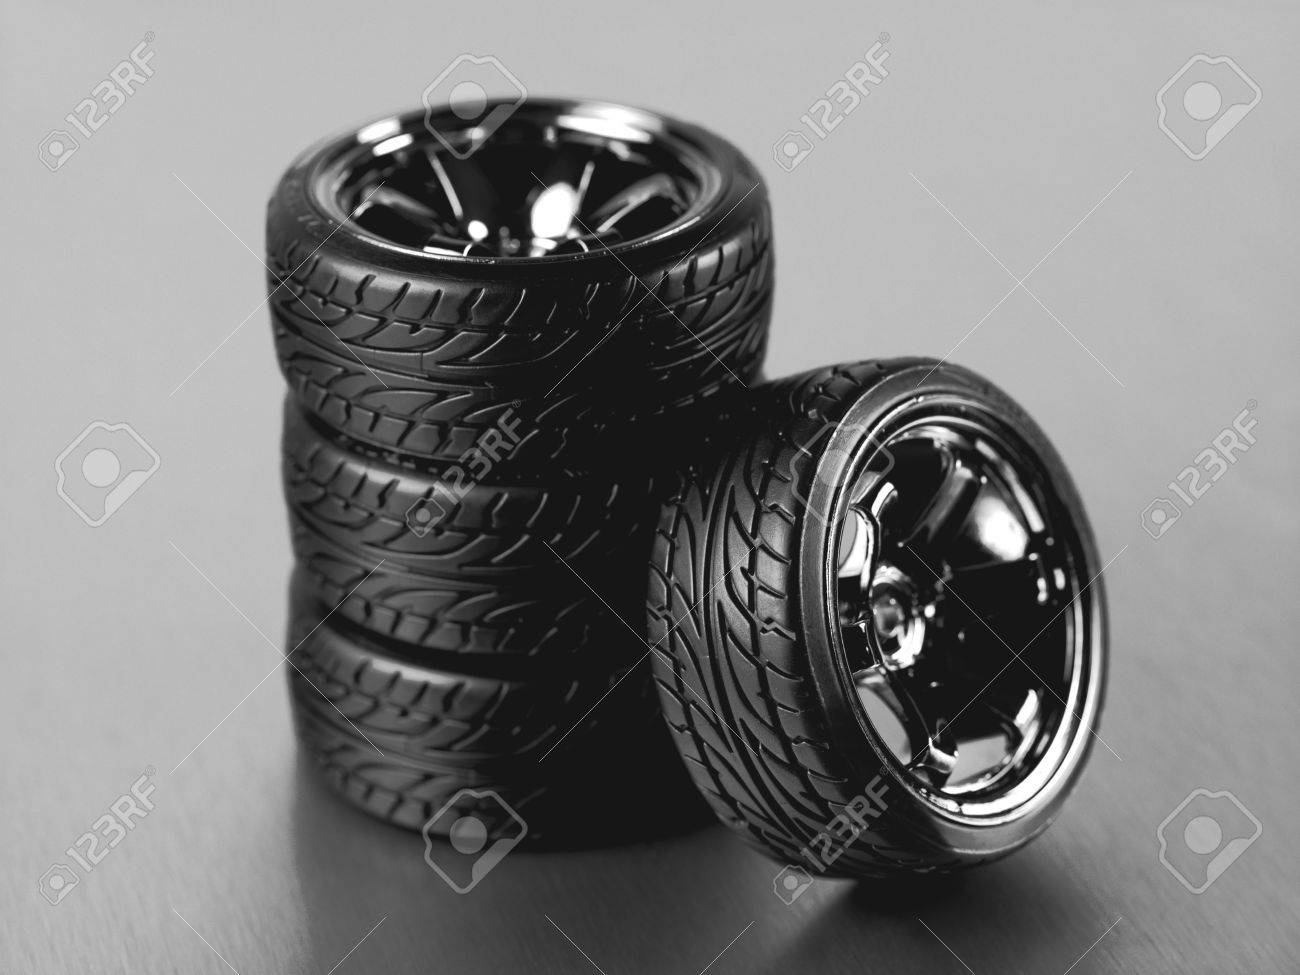 Rubber tyres with sports rims on a silver background Stock Photo - 10485962